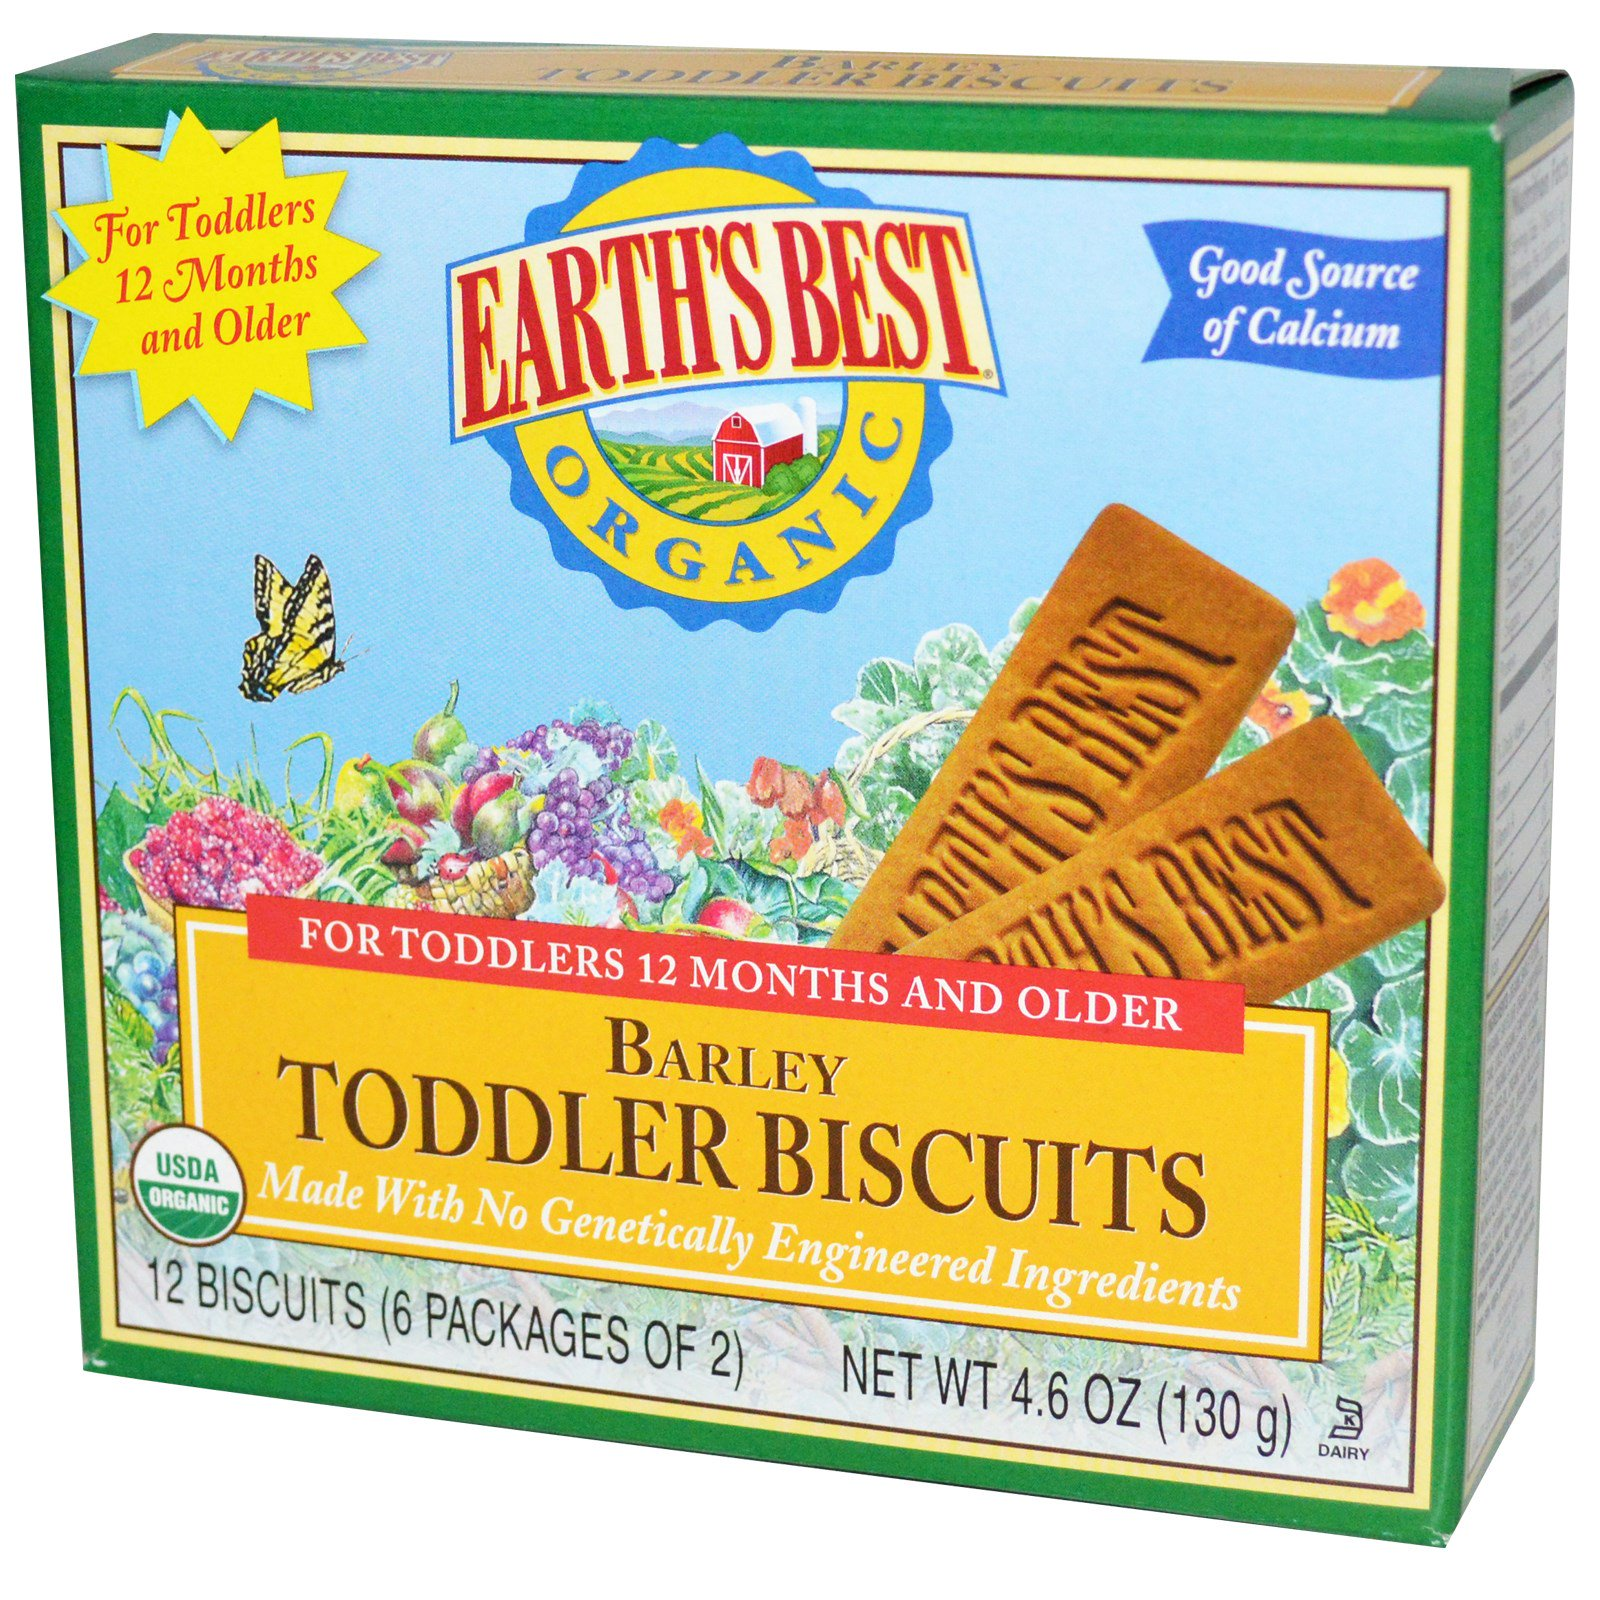 Earth's Best, Organic Toddler Biscuits, Barley, 12 Biscuits (6 Packages of 2)